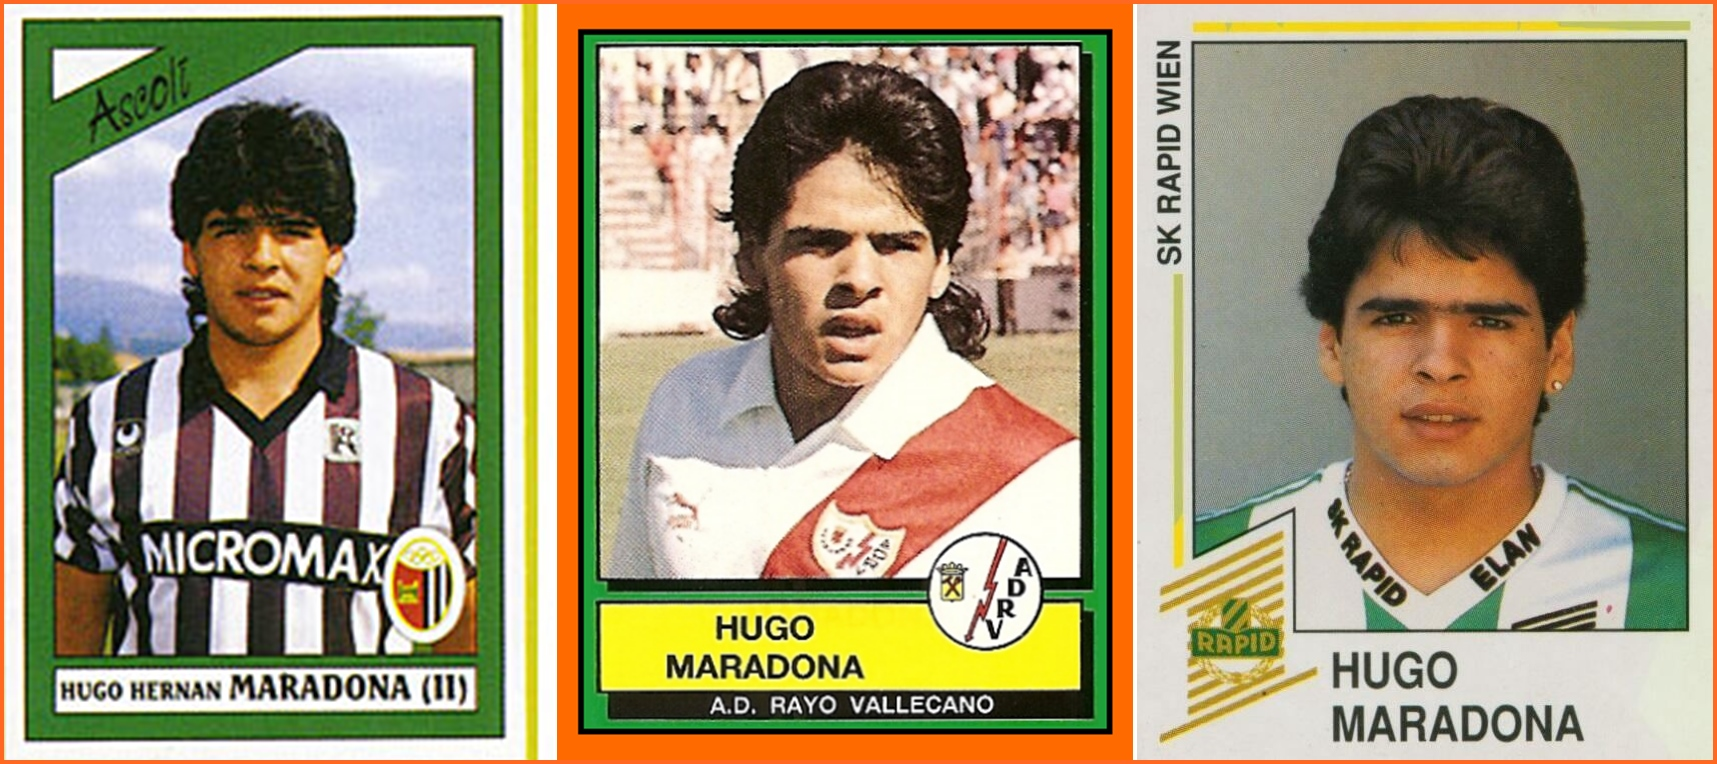 maradona hugo stickers-